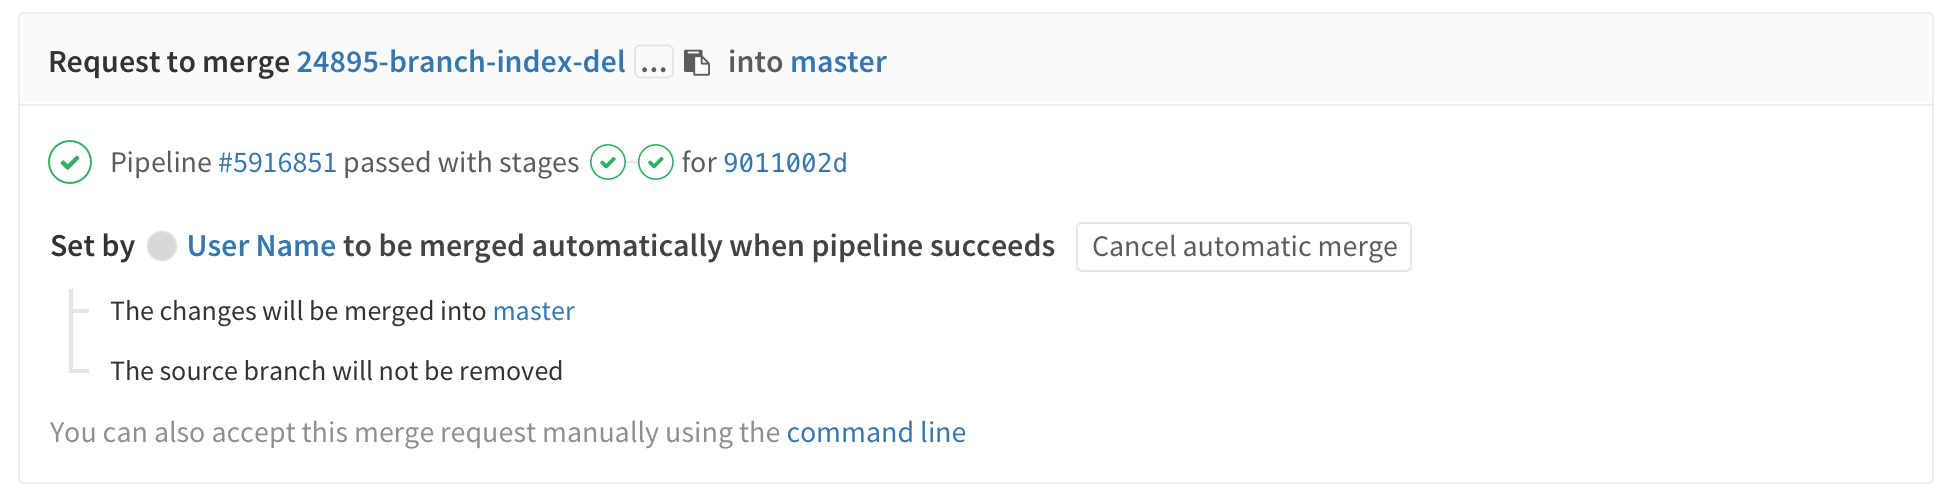 MR-set-up-to-merge-when-pipeline-succeeds